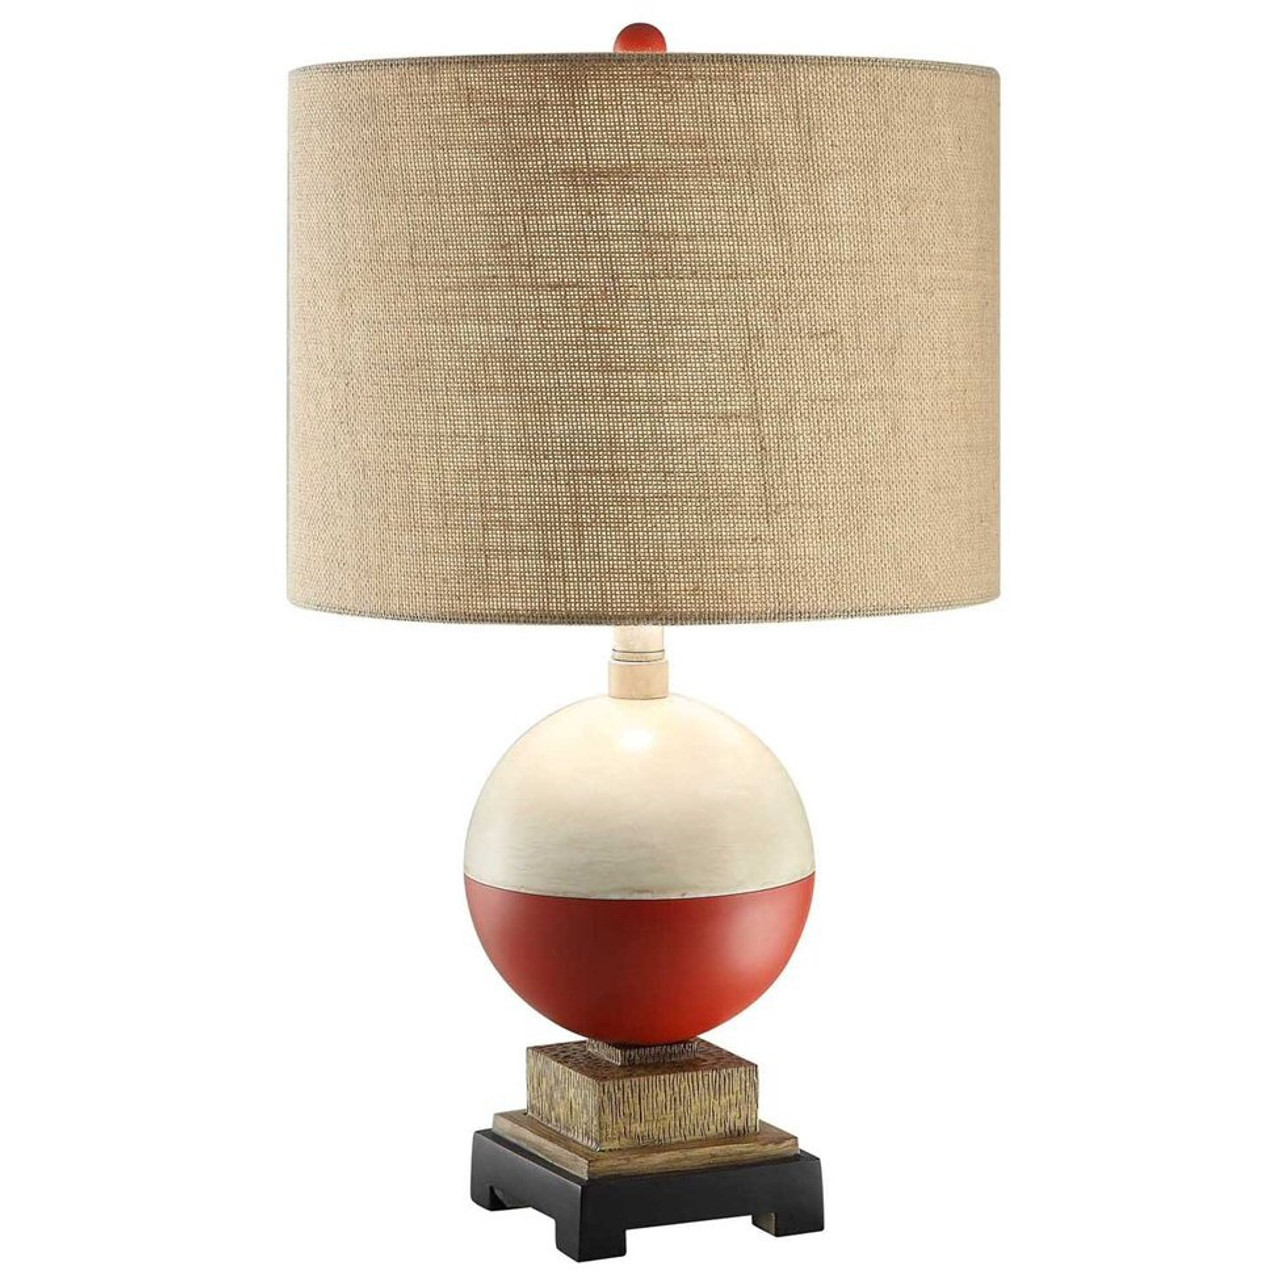 Bobber Fishing Resin Table Lamp With Burlap Shade   Wildlife Style Lighting